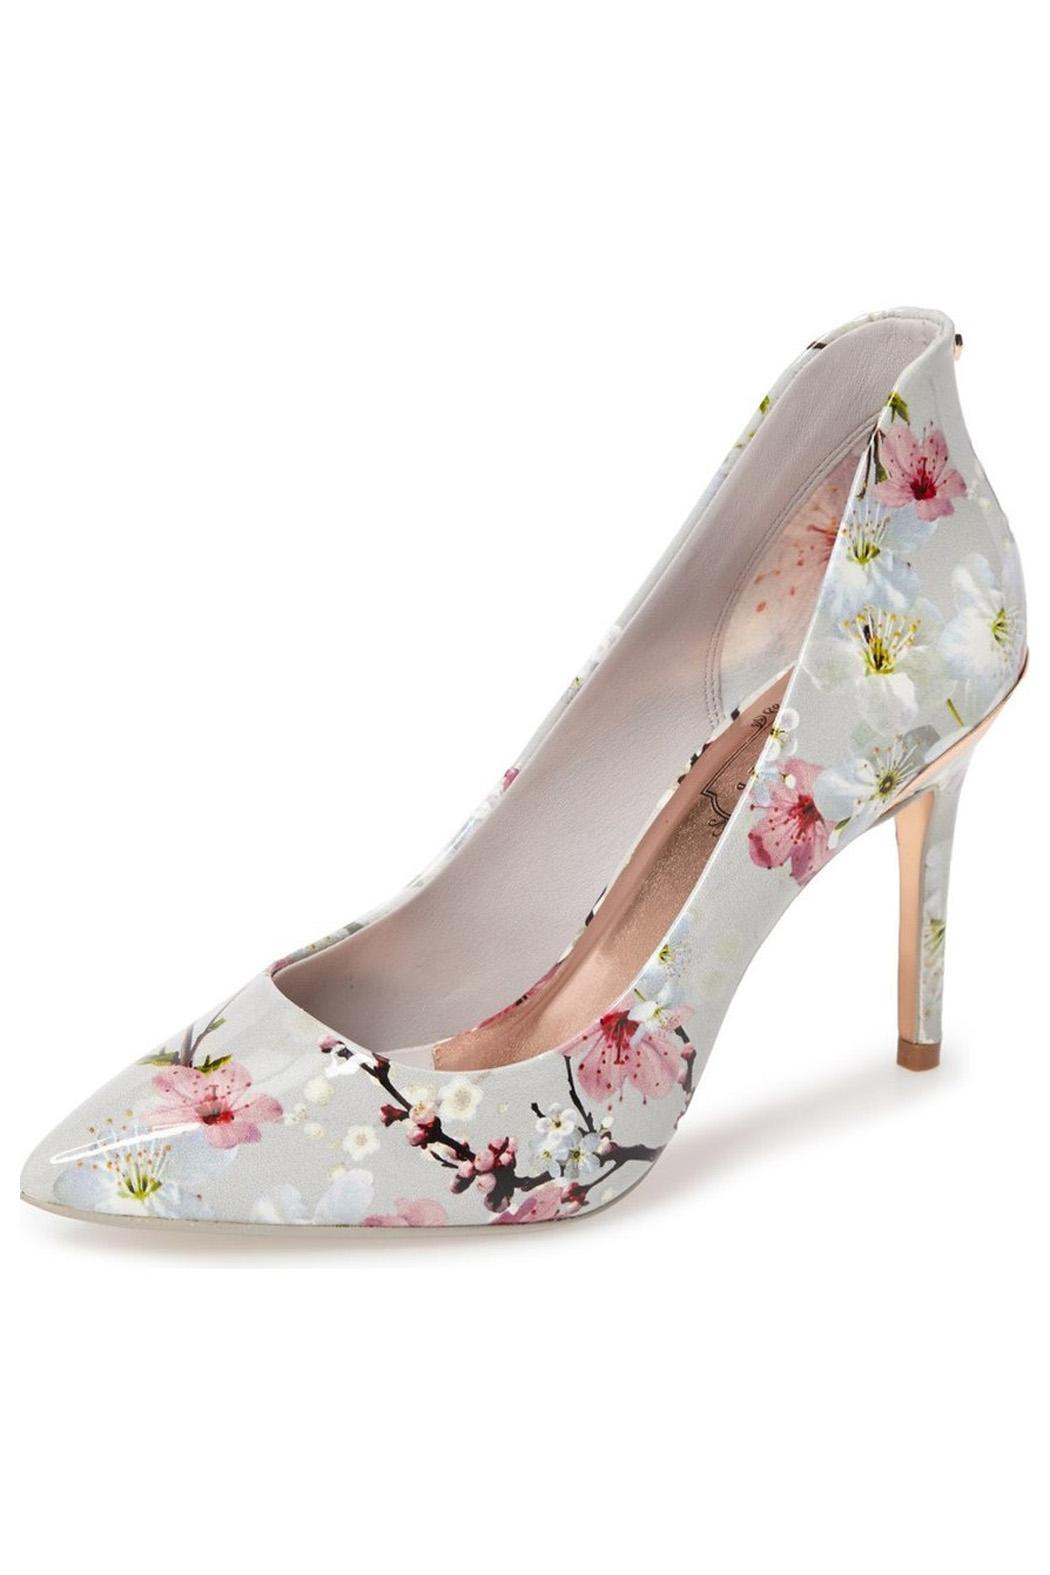 2ffbed8808cc Ted Baker London Savei Floral Pump from Wallingford by The Dressing ...